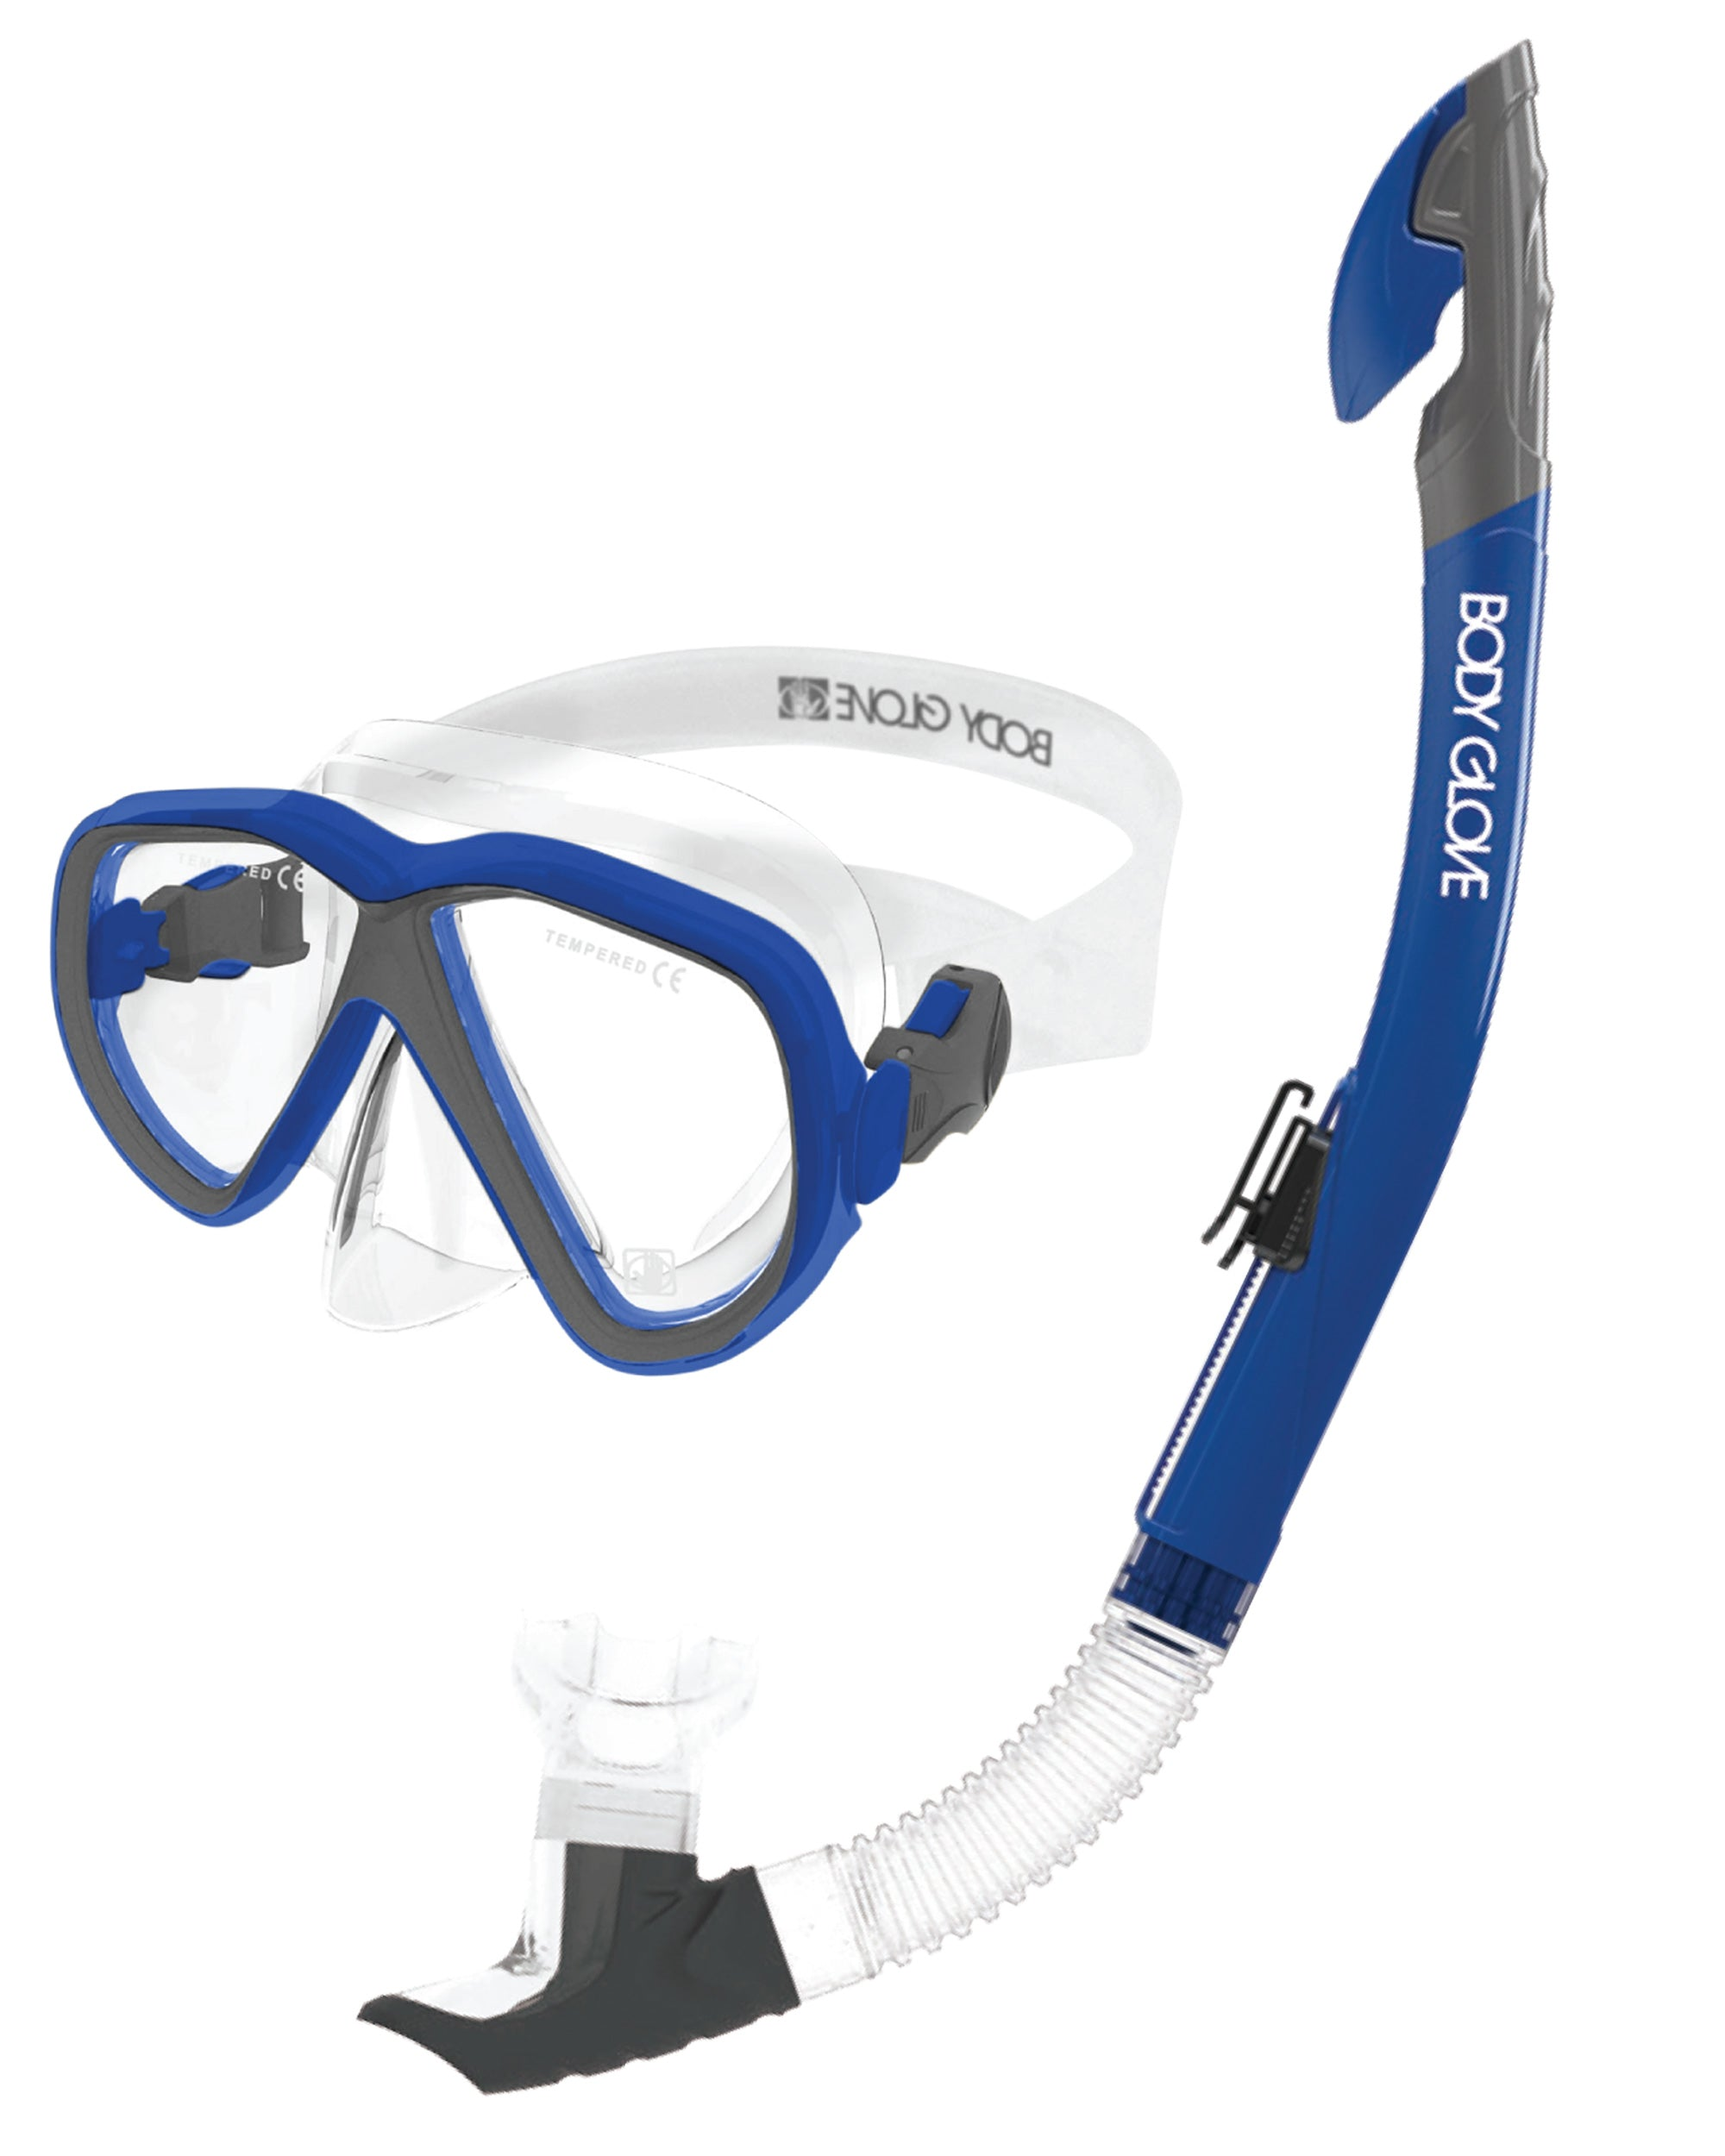 Azores Mask / Snorkel Combo - Blue/Grey